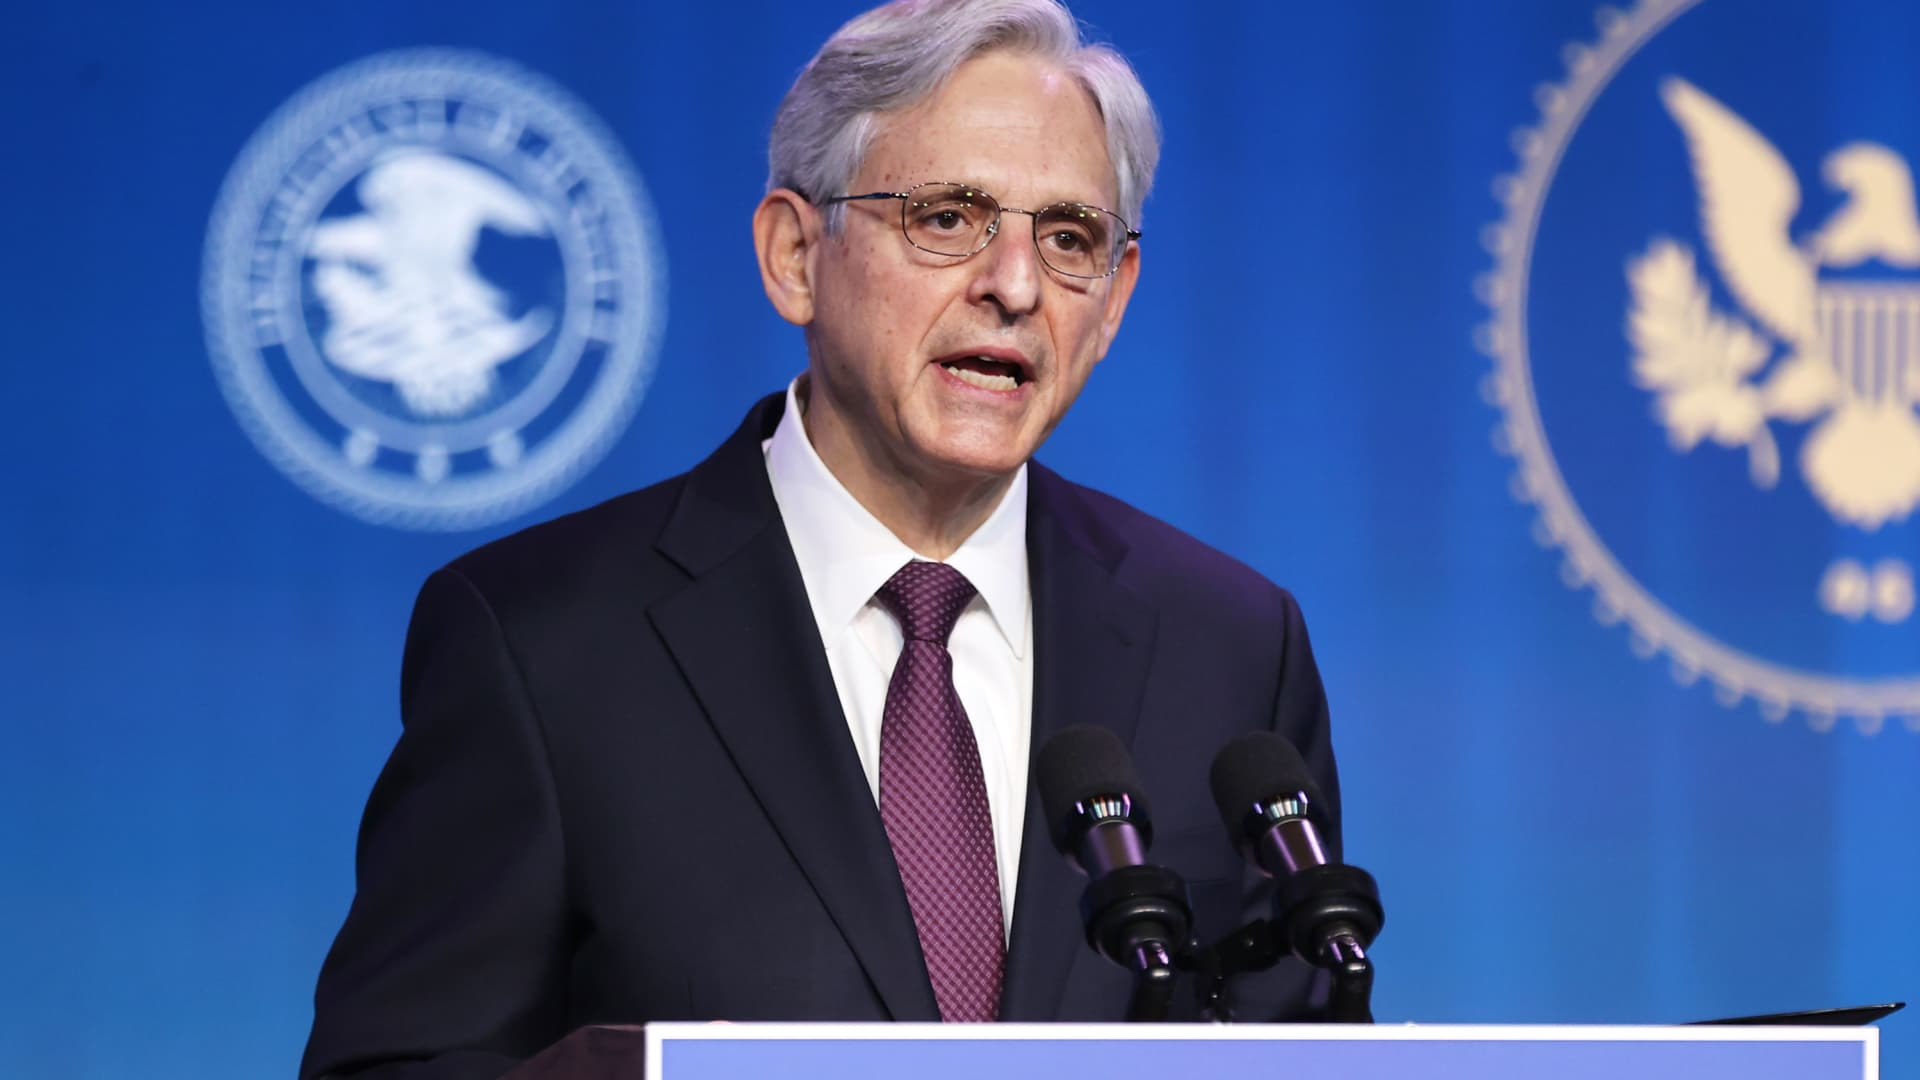 Federal Judge Merrick Garland delivers remarks after being nominated to be U.S. attorney general by President-elect Joe Biden at The Queen theater January 07, 2021 in Wilmington, Delaware.